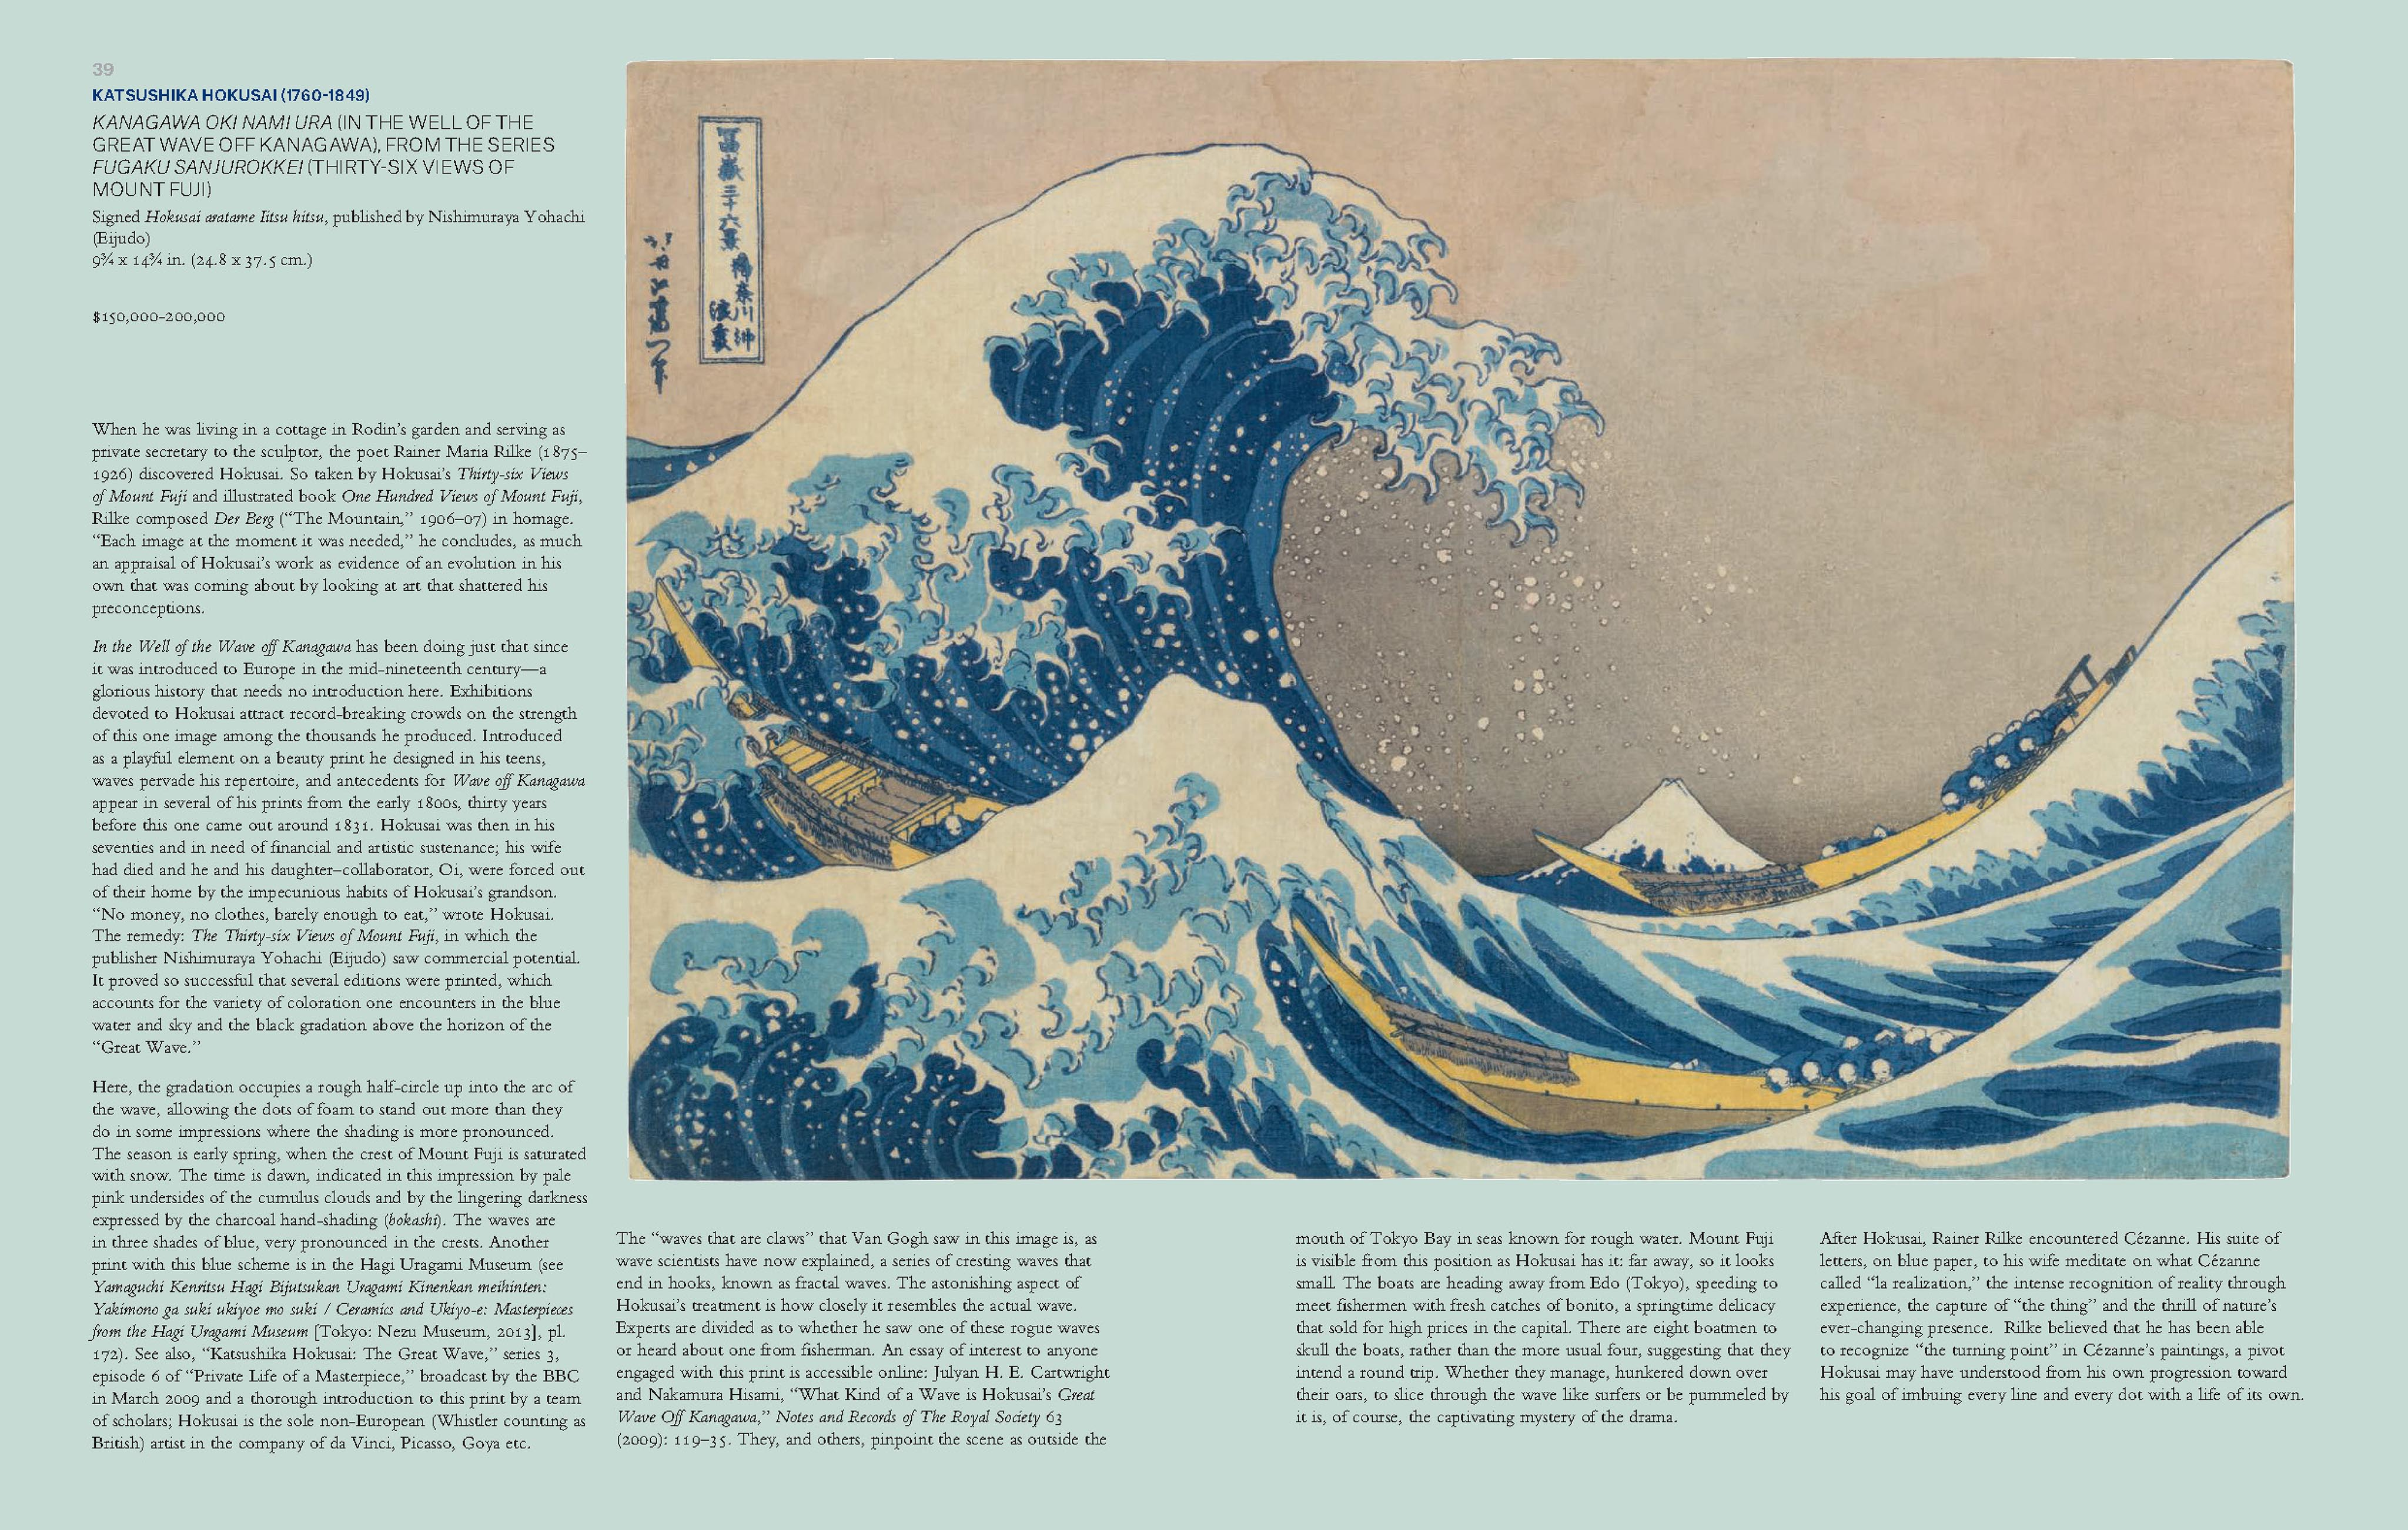 Kanagawa Oki Nami Ura (In the Well of the Great Wave Off Kanagawa) as shown on pages 39-40 of the catalog for the Christie's auction 'Japanese and Korean Art - 18 April 2018'. | Image from the catalog. Fair use by The Ruggist.